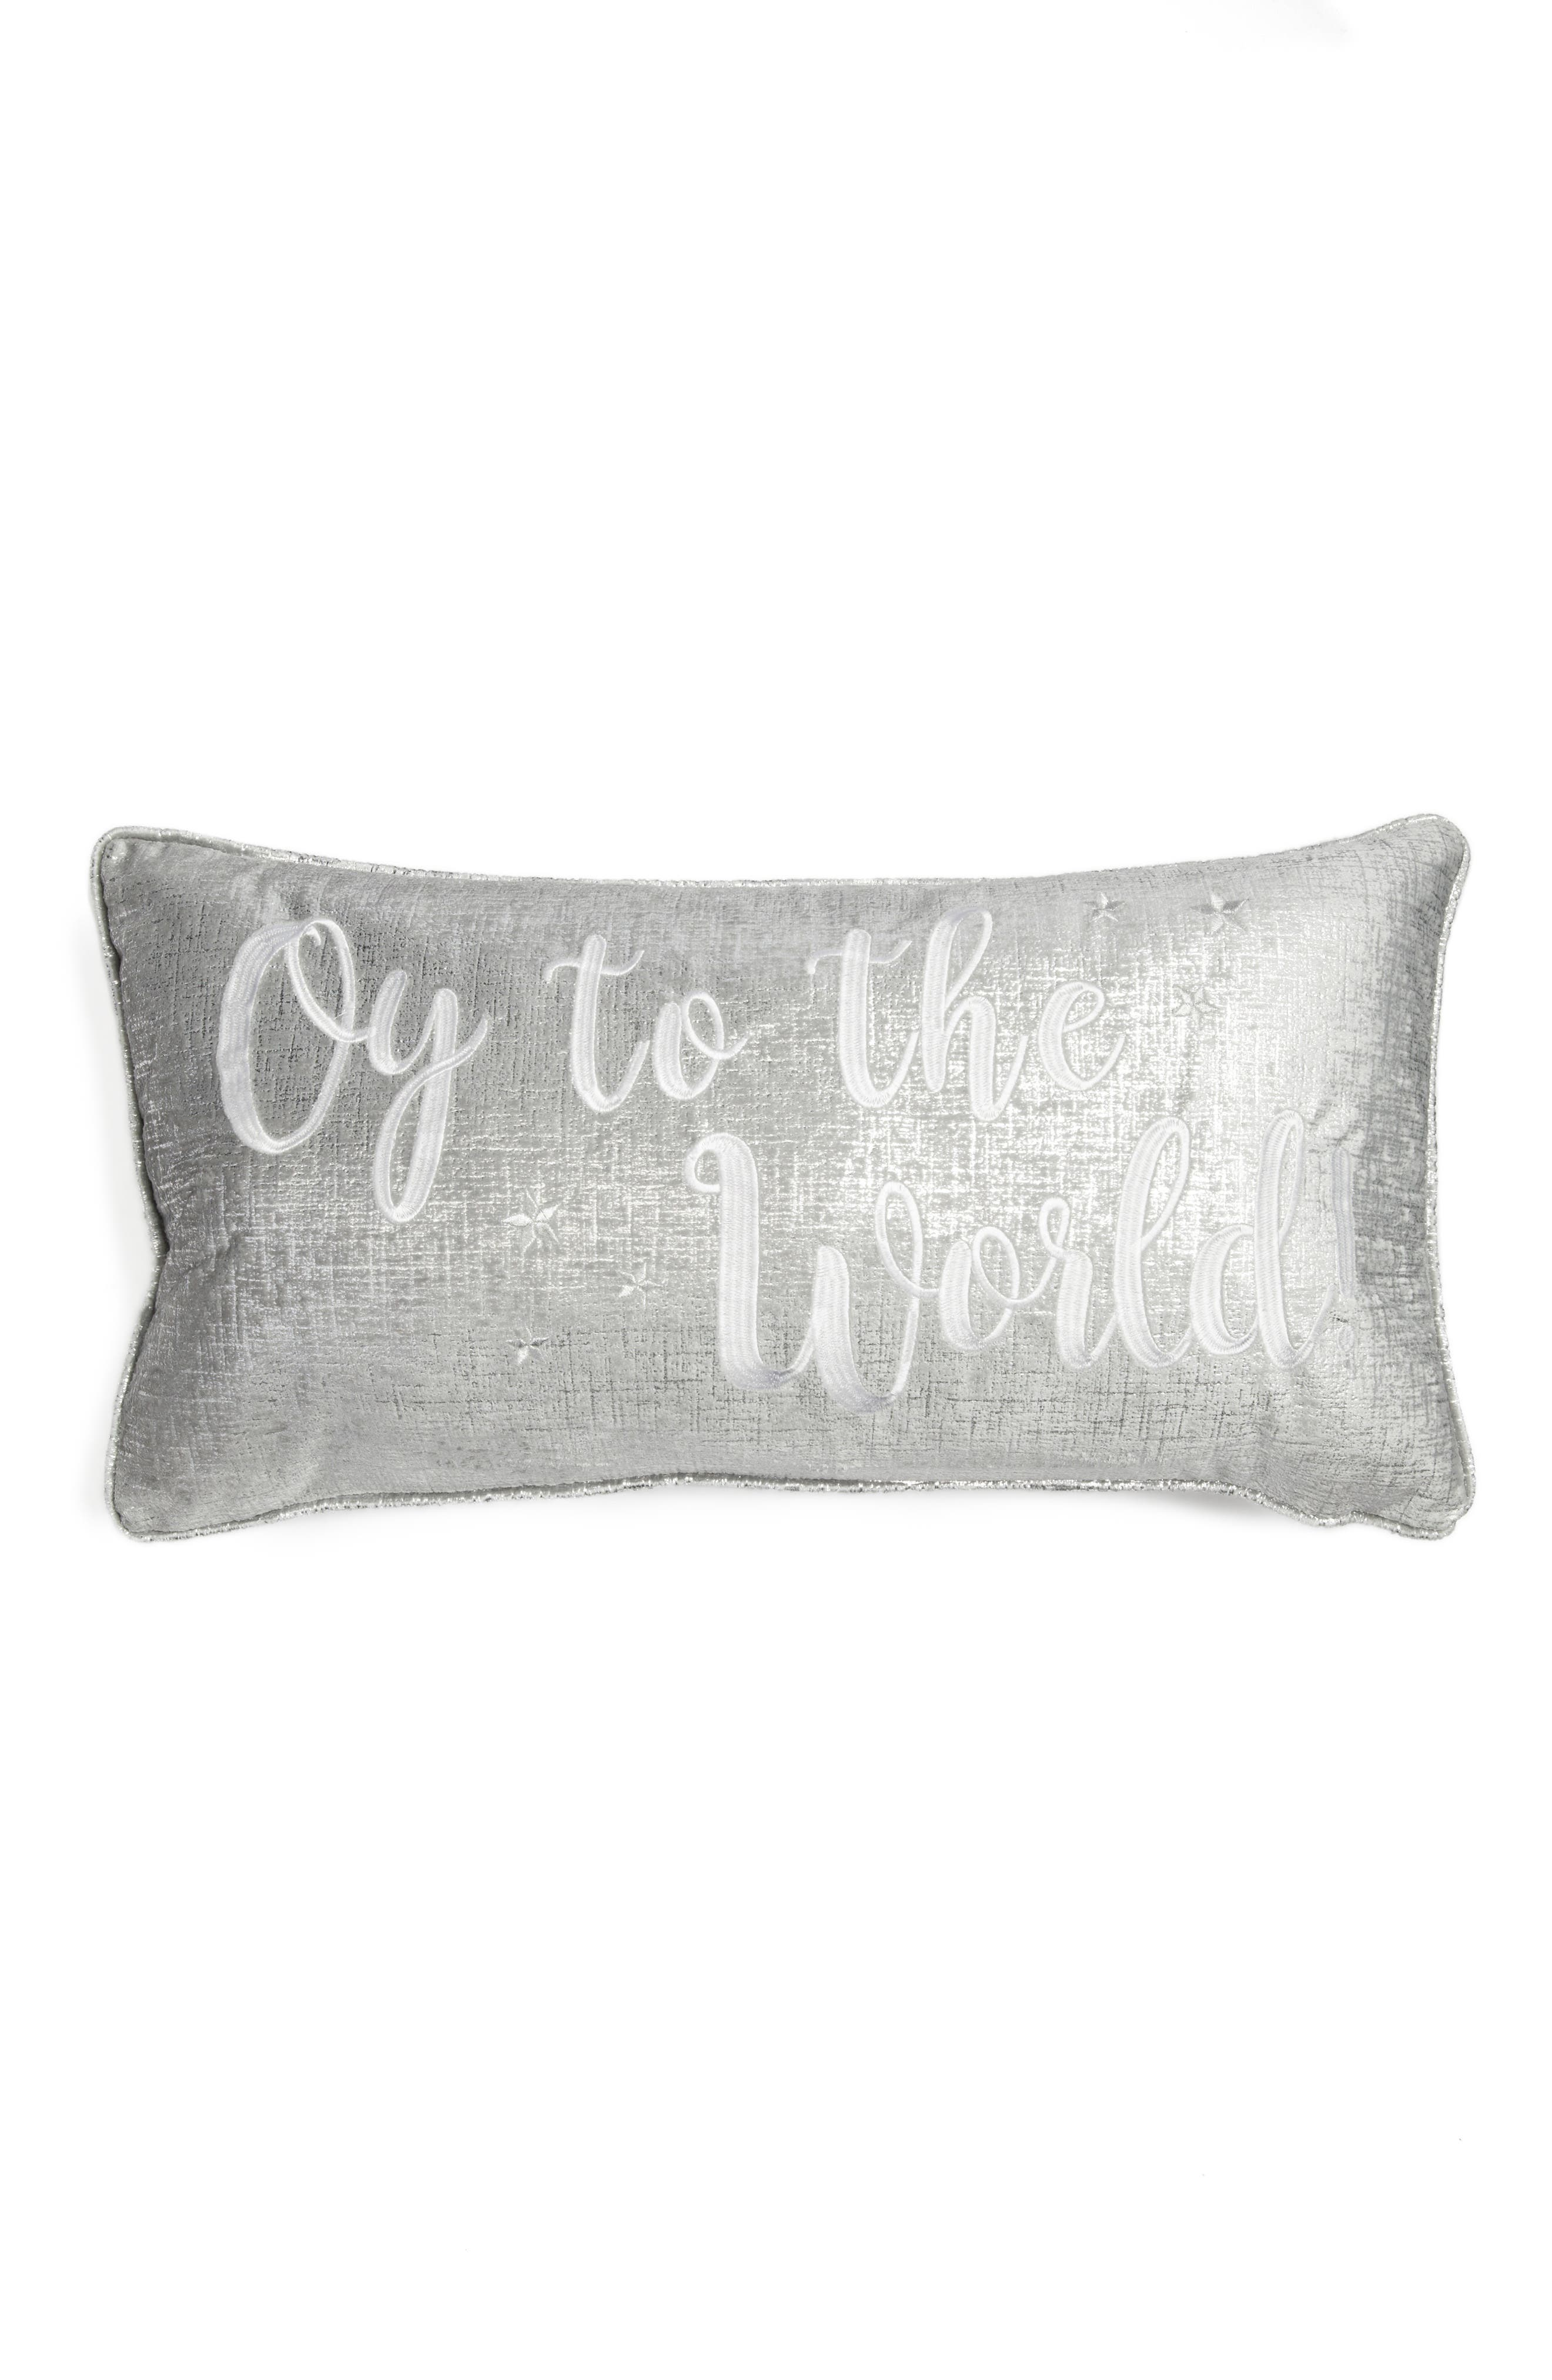 Levtex Oy to the World Accent Pillow